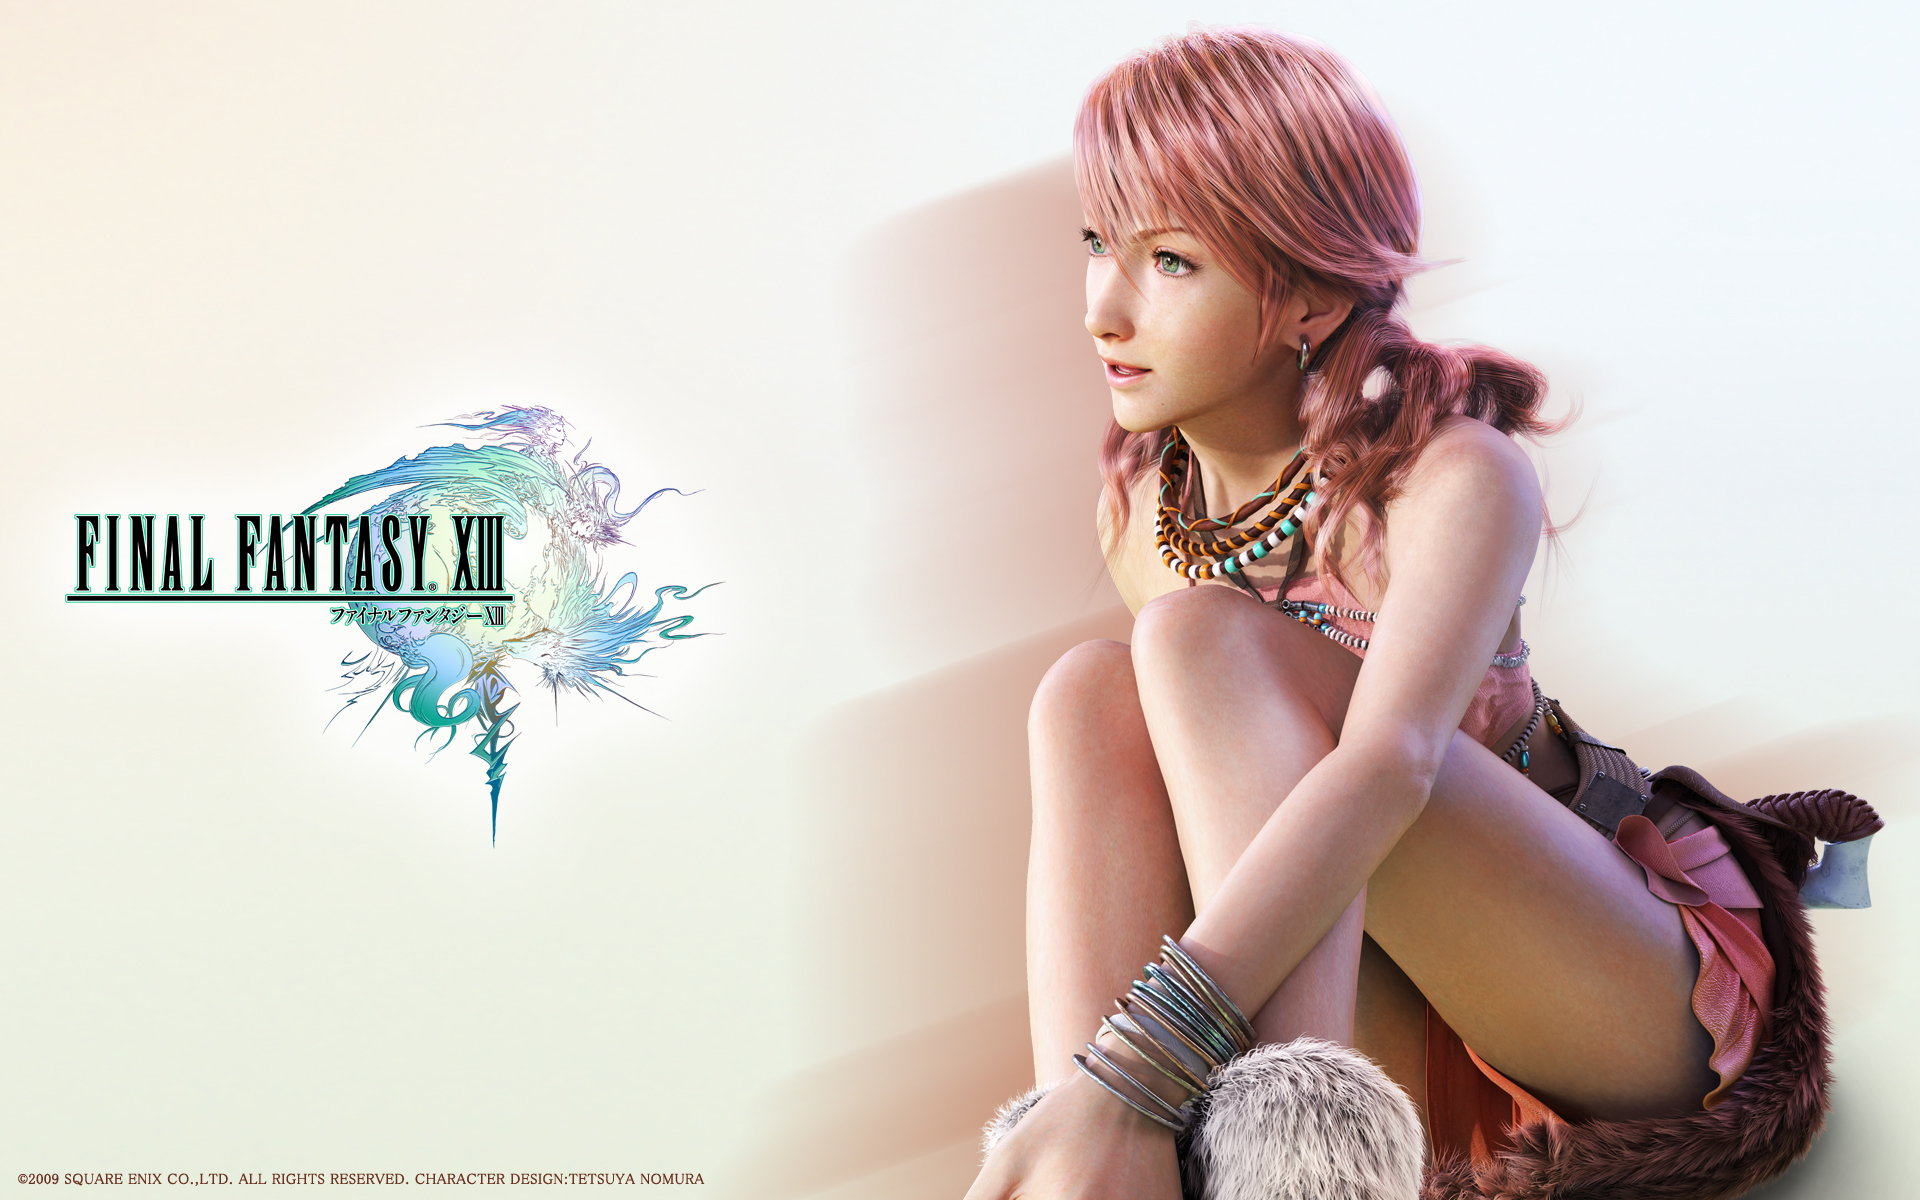 Square Enix: 5 Million Copies of Final Fantasy XIII Shipped